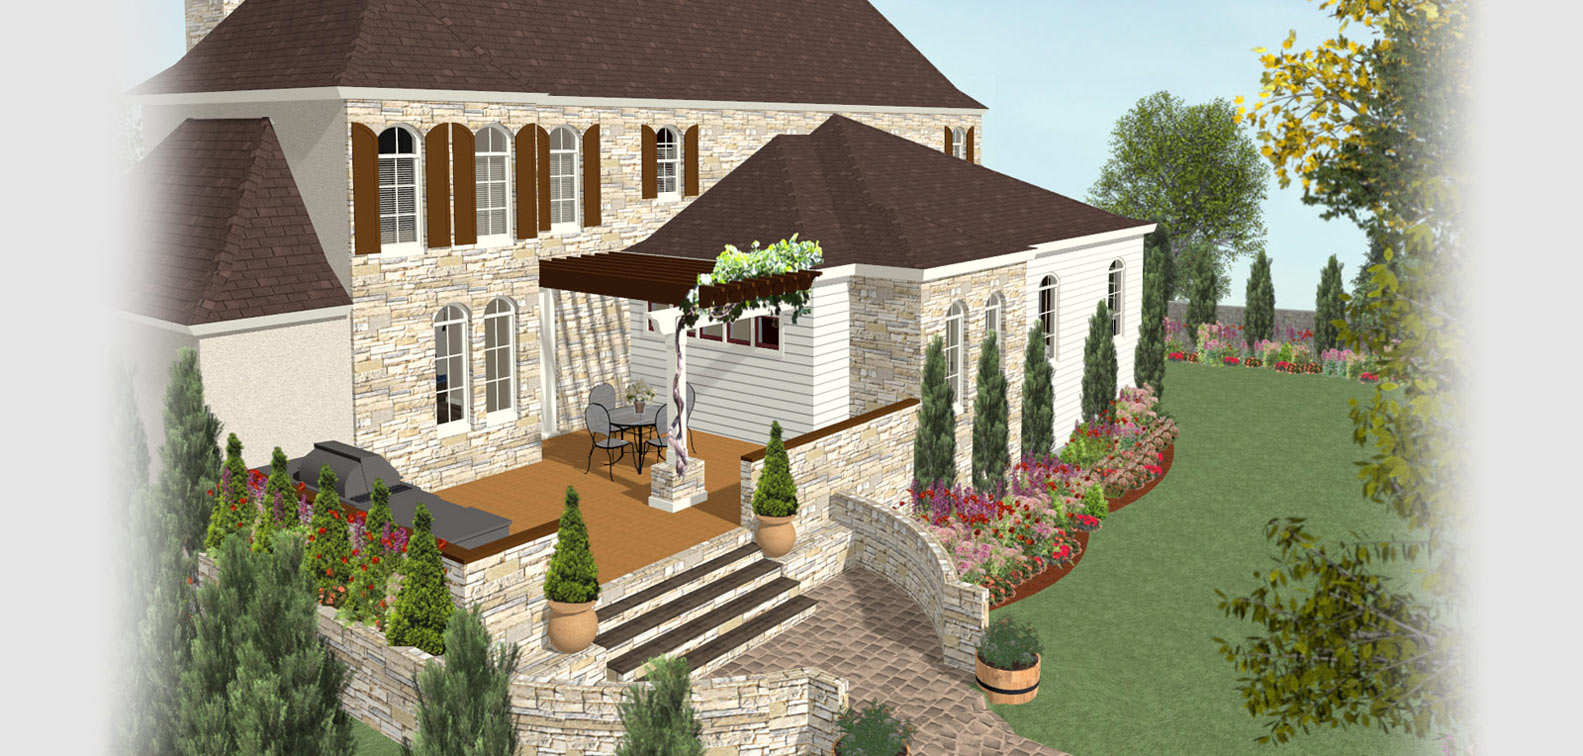 Home Garden Design Software Remodelling New Home Designer Software For Deck And Landscape Software Projects Inspiration